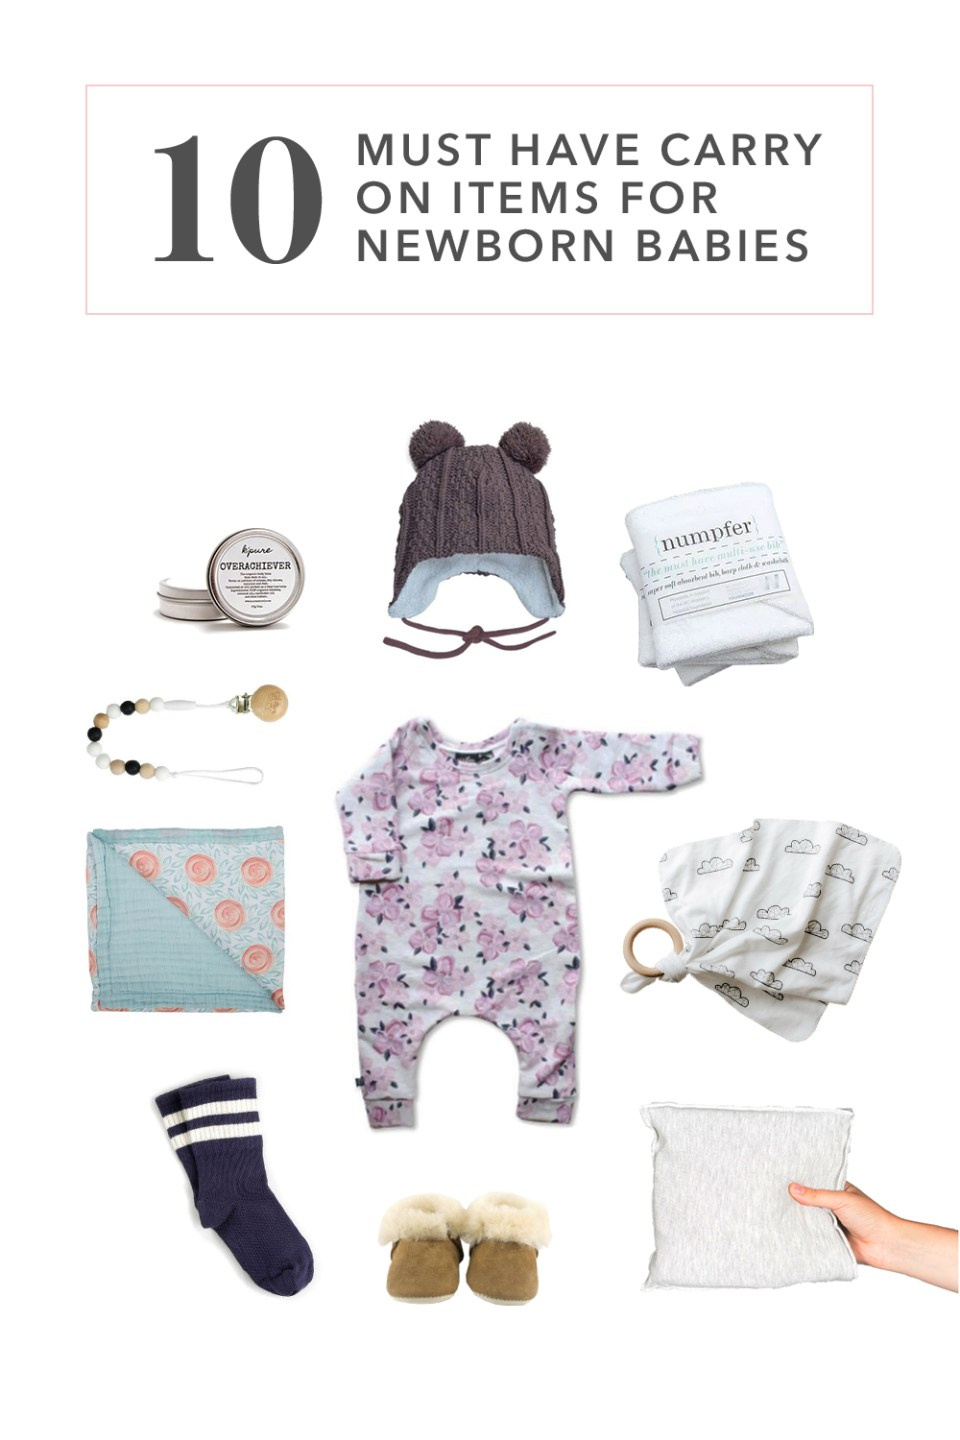 10 Must Have Carry On Items for Newborn Babies | What to pack in your carry on | Travelling with a baby